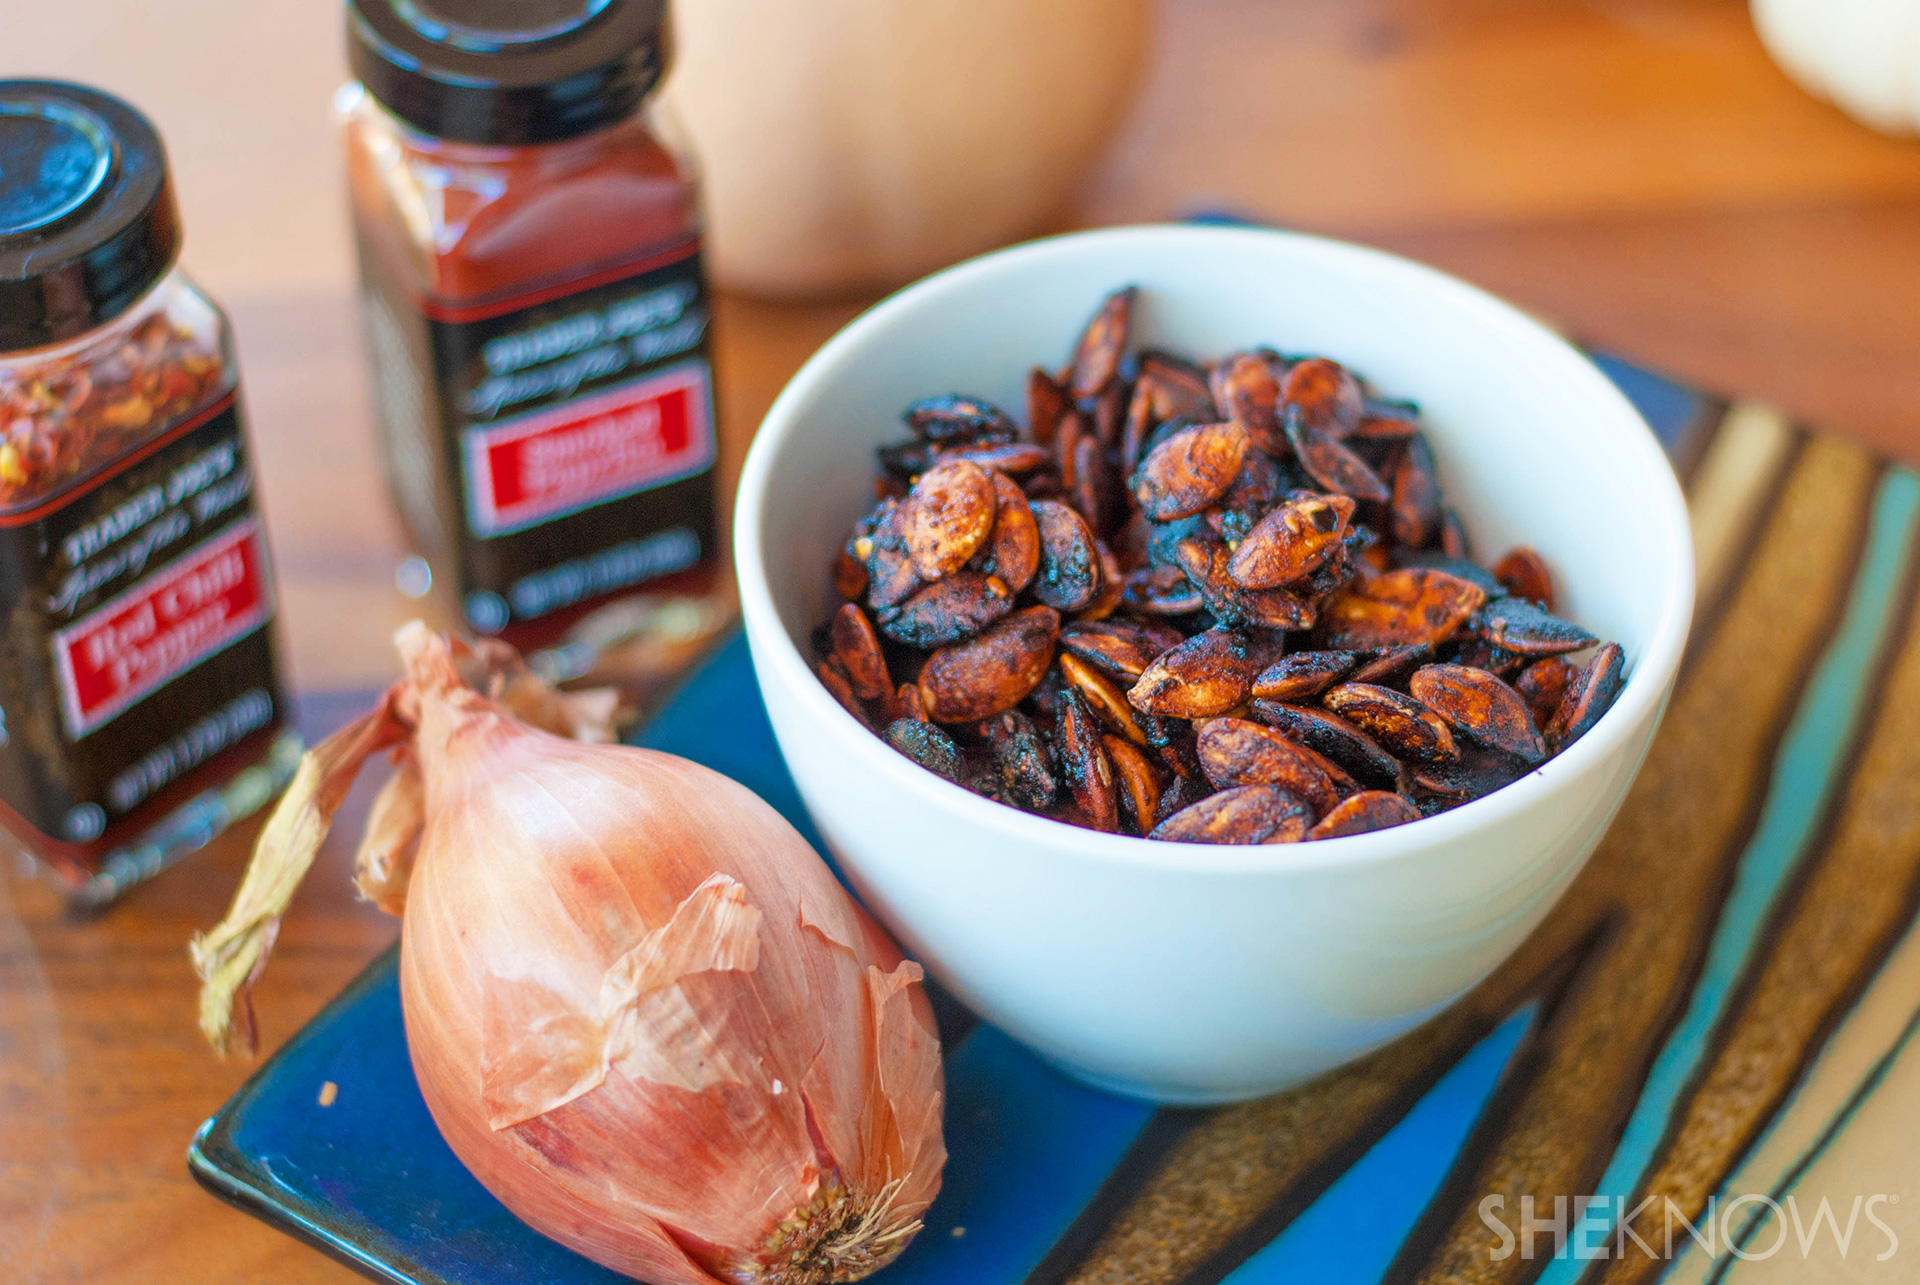 Spicy barbecue roasted squash seeds